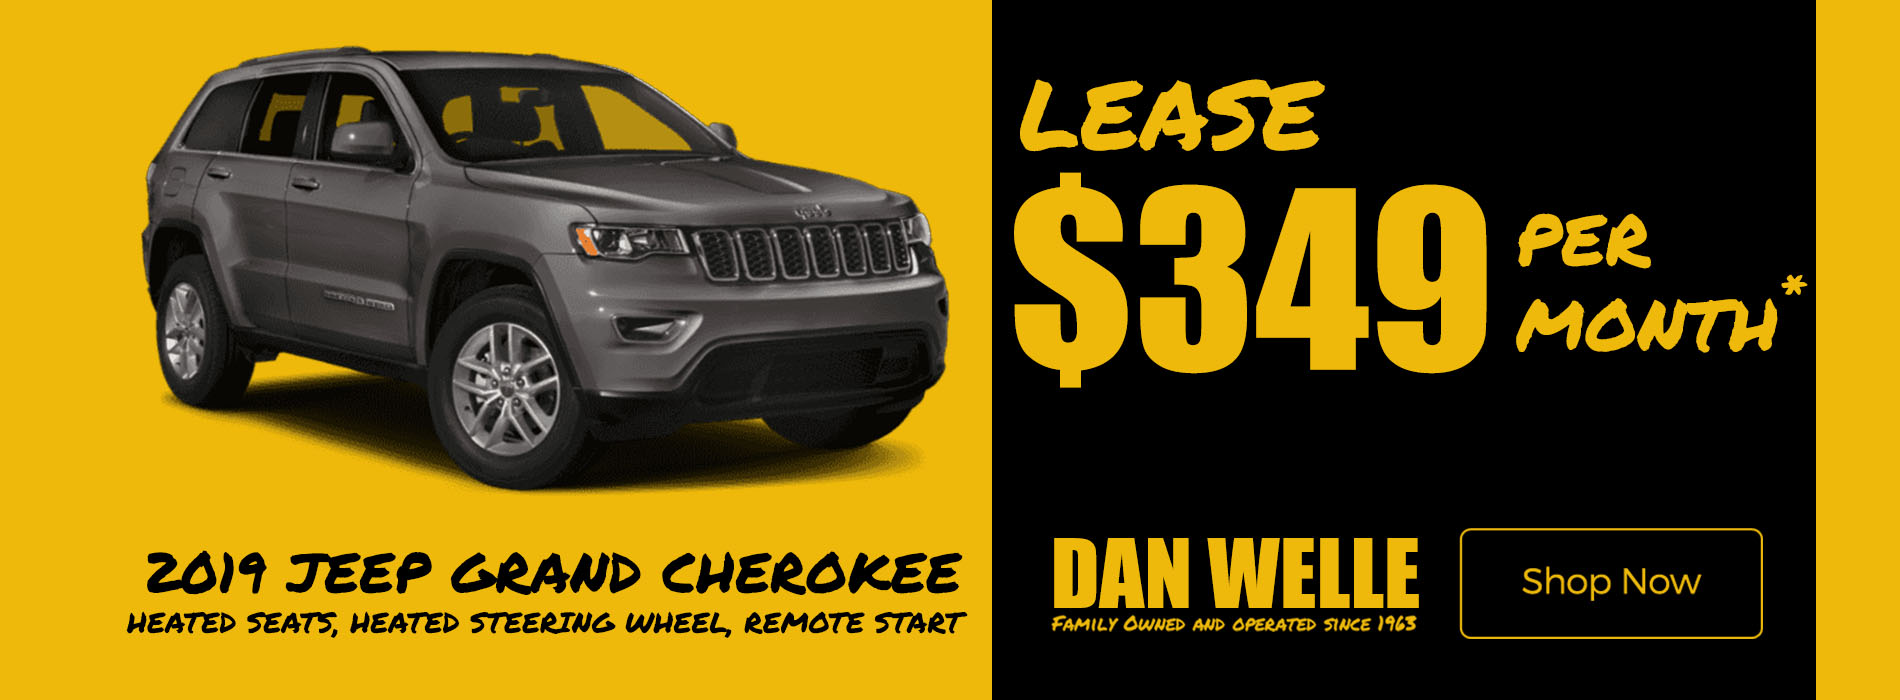 March Grand Cherokee